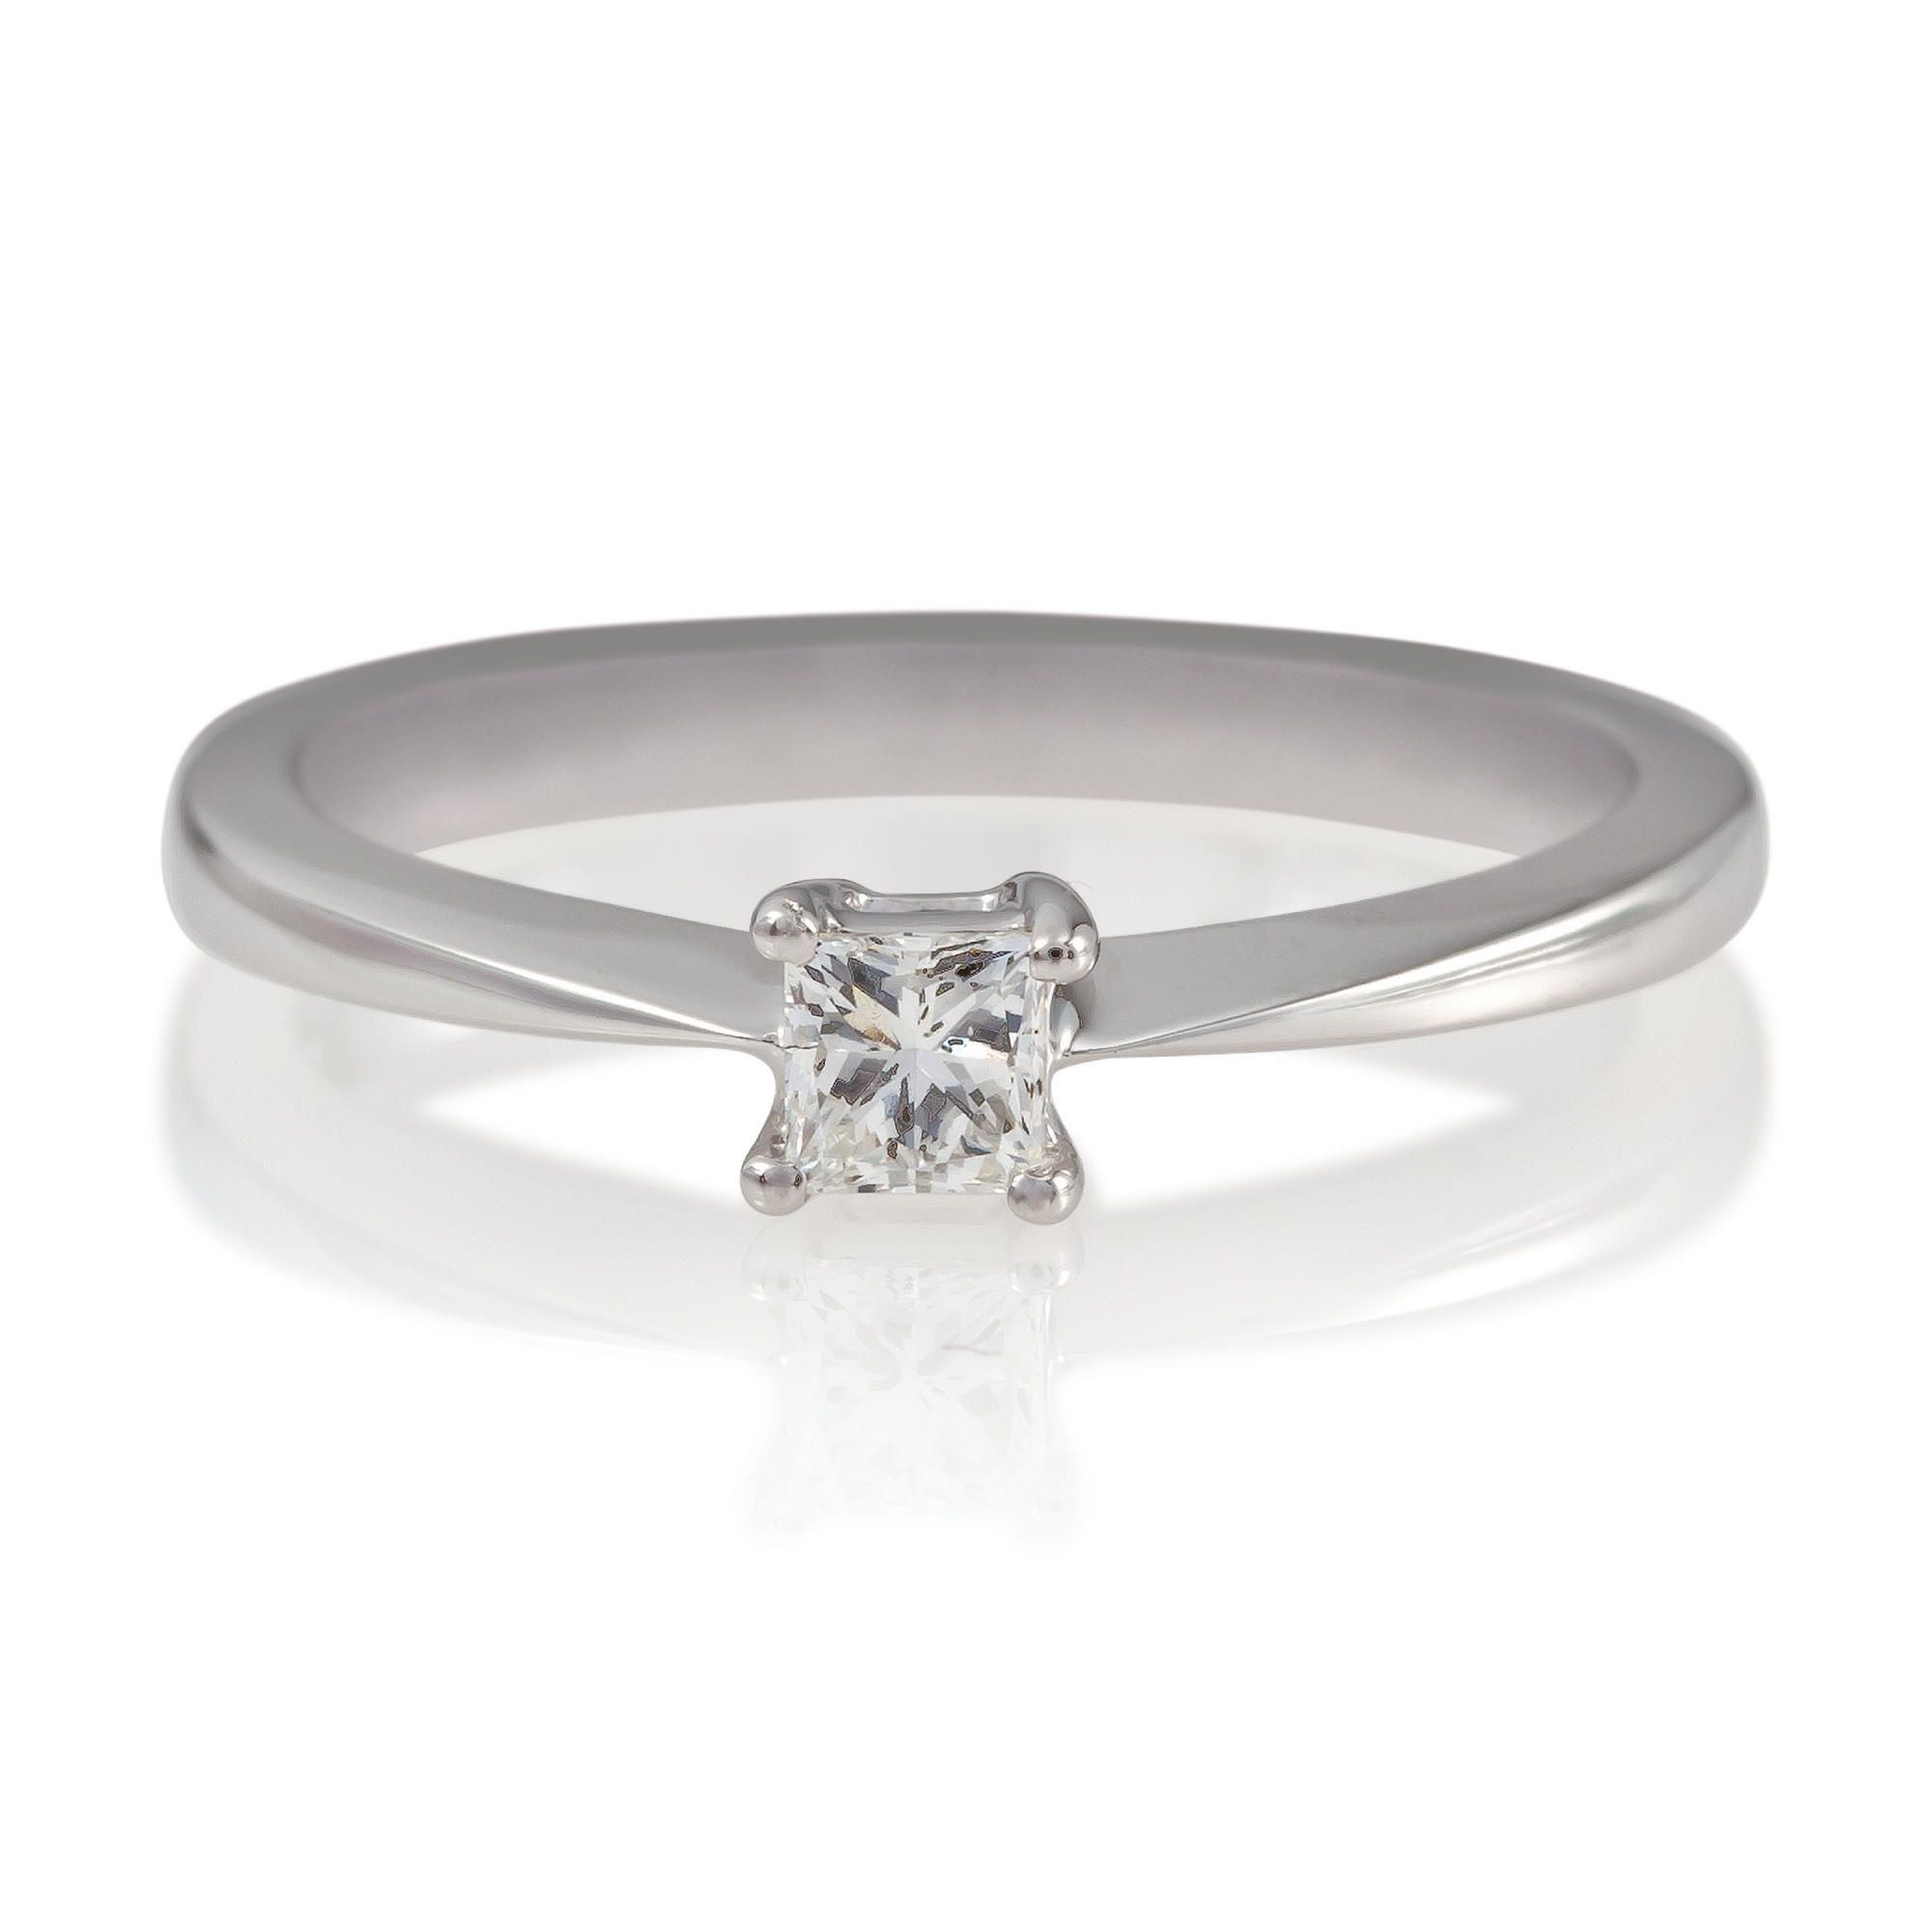 18ct White Gold 1/4ct Diamond Princess Cut Ring, N at Tesco Direct